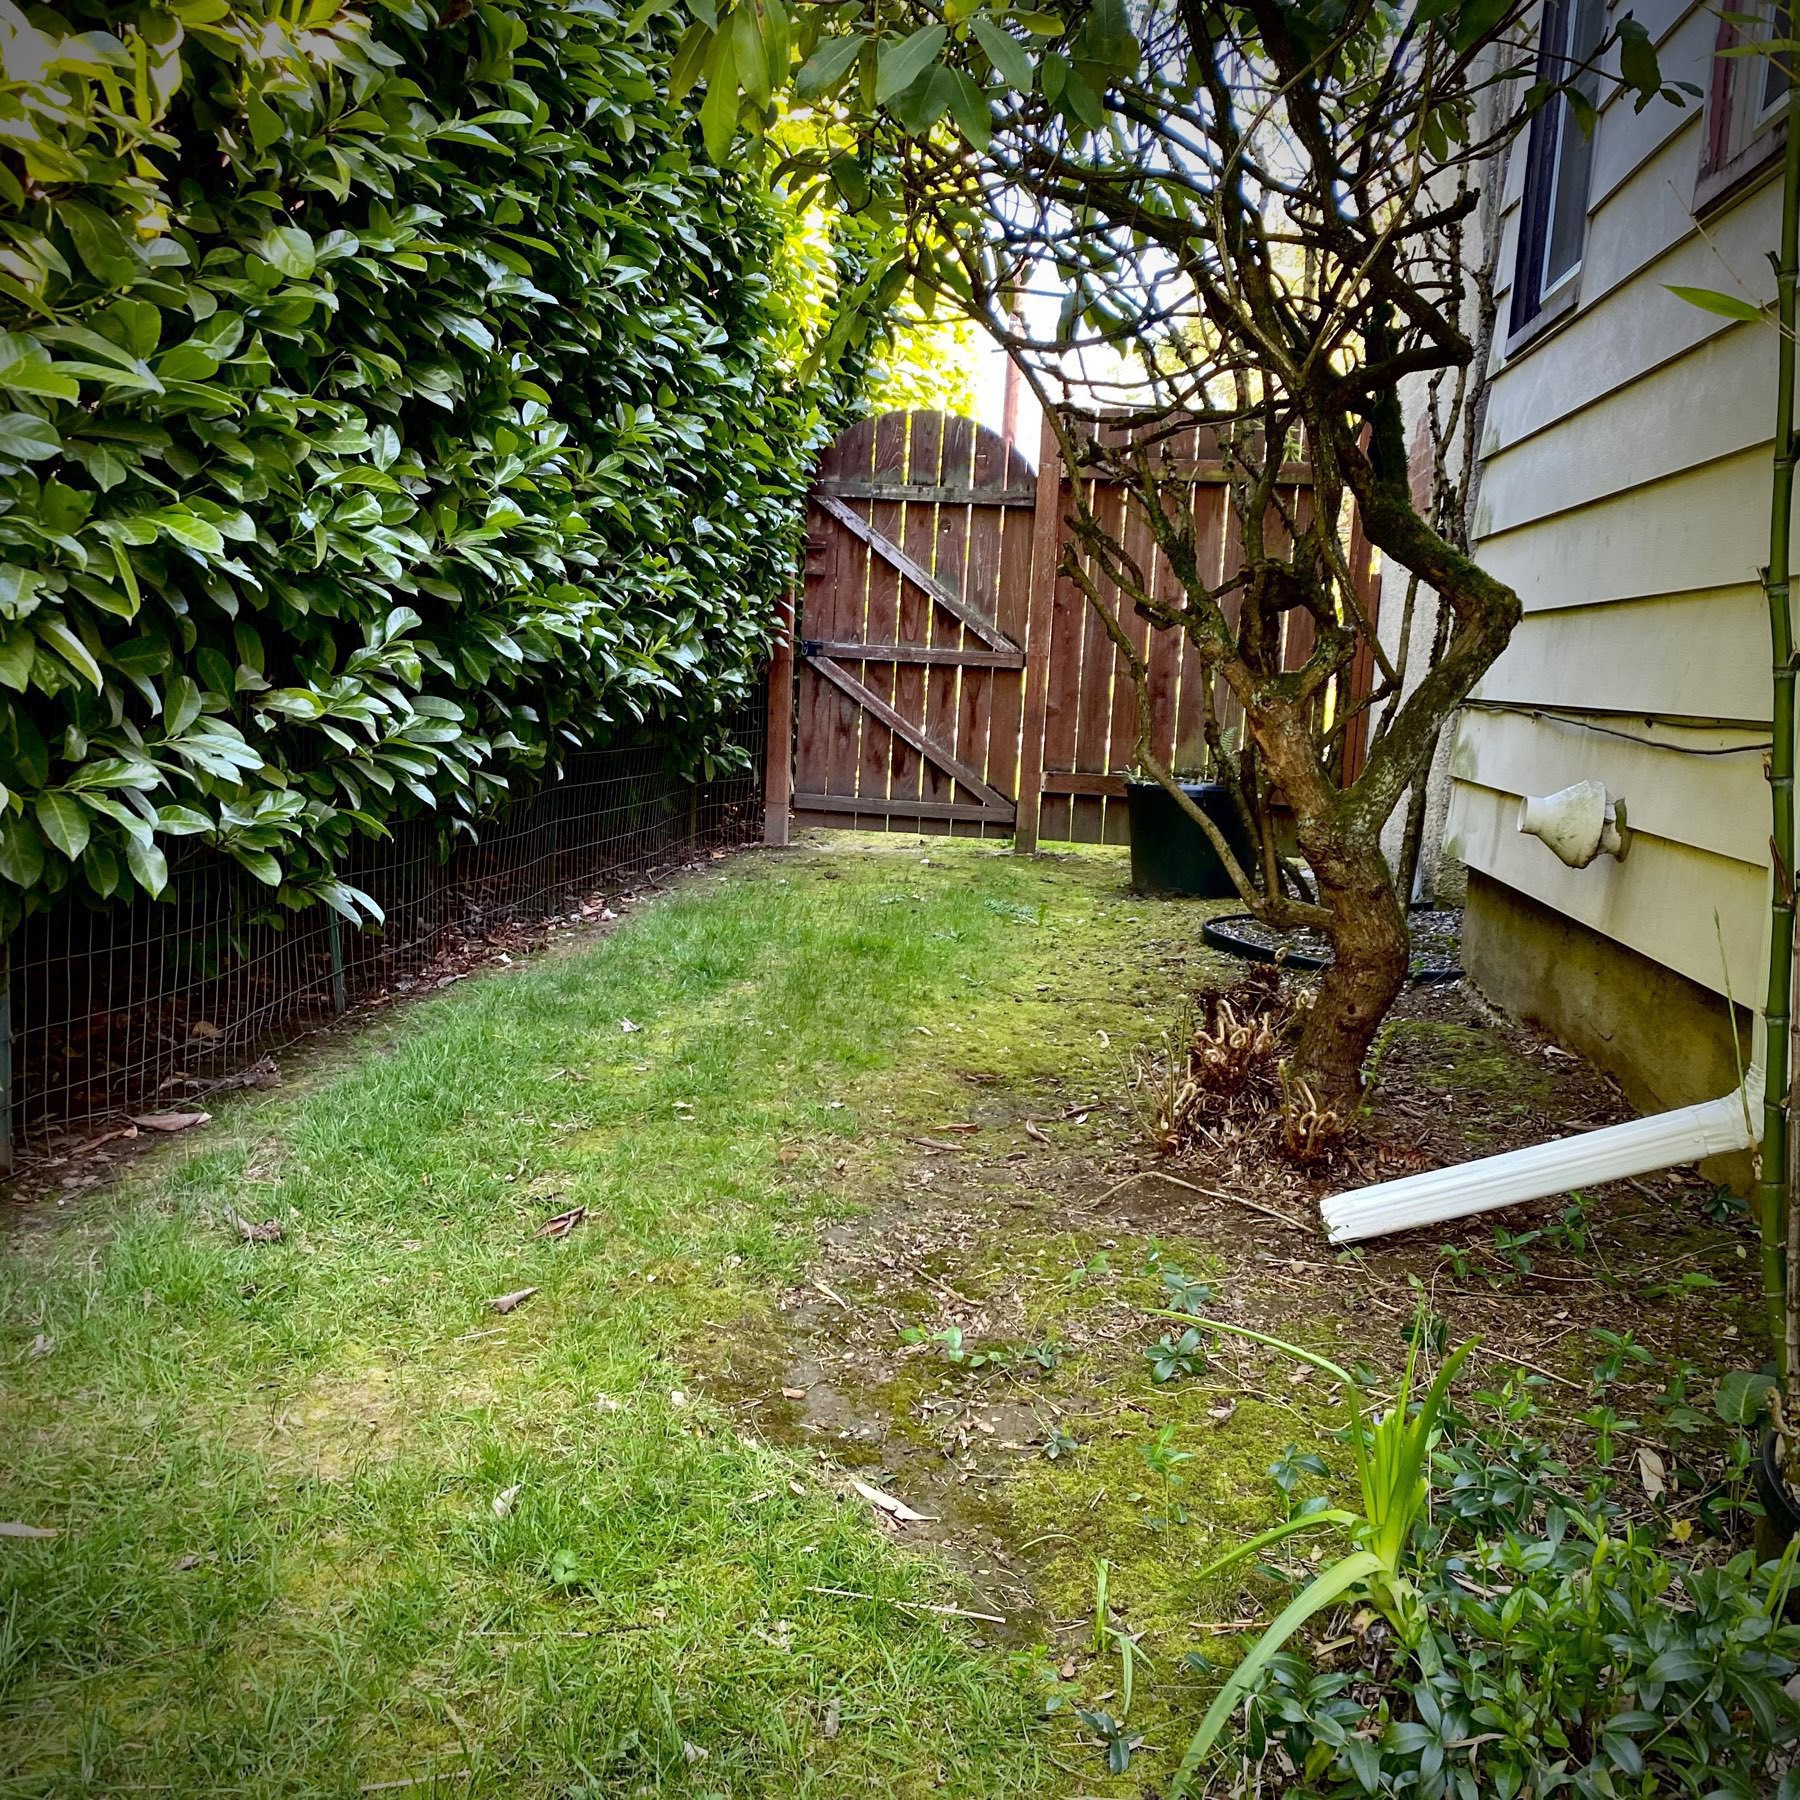 backyard hedge and gate, with invisible squirrels.